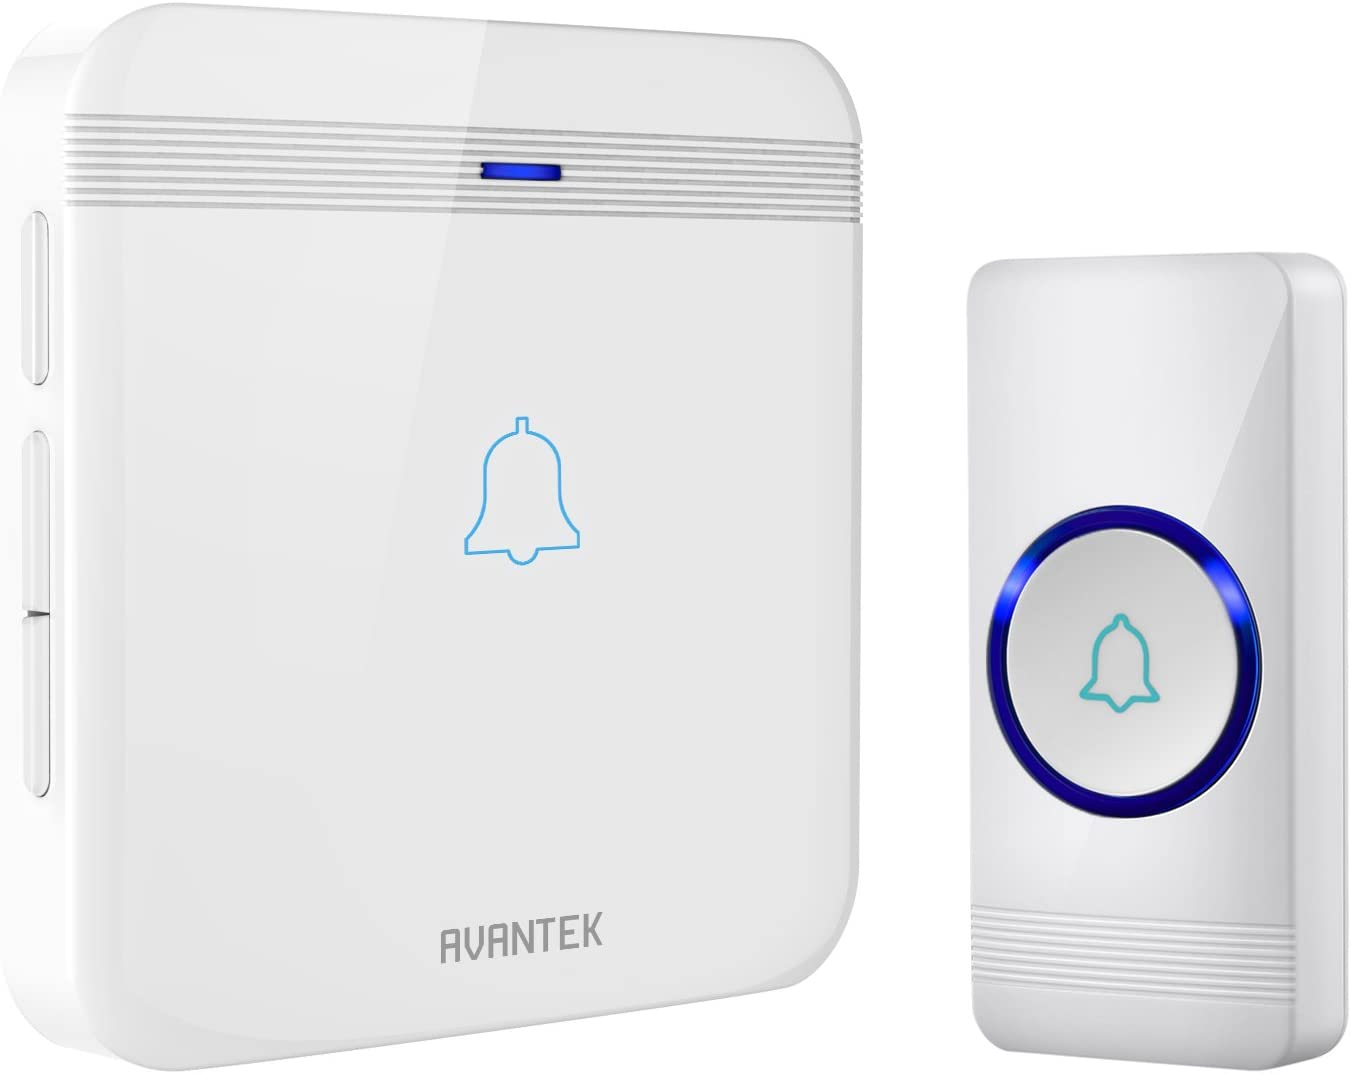 Wireless Doorbell AVANTEK Waterproof Chime Kit Operating at Over 1,300 Feet with 52 Melodies CD Quality Sound /& LED Flash